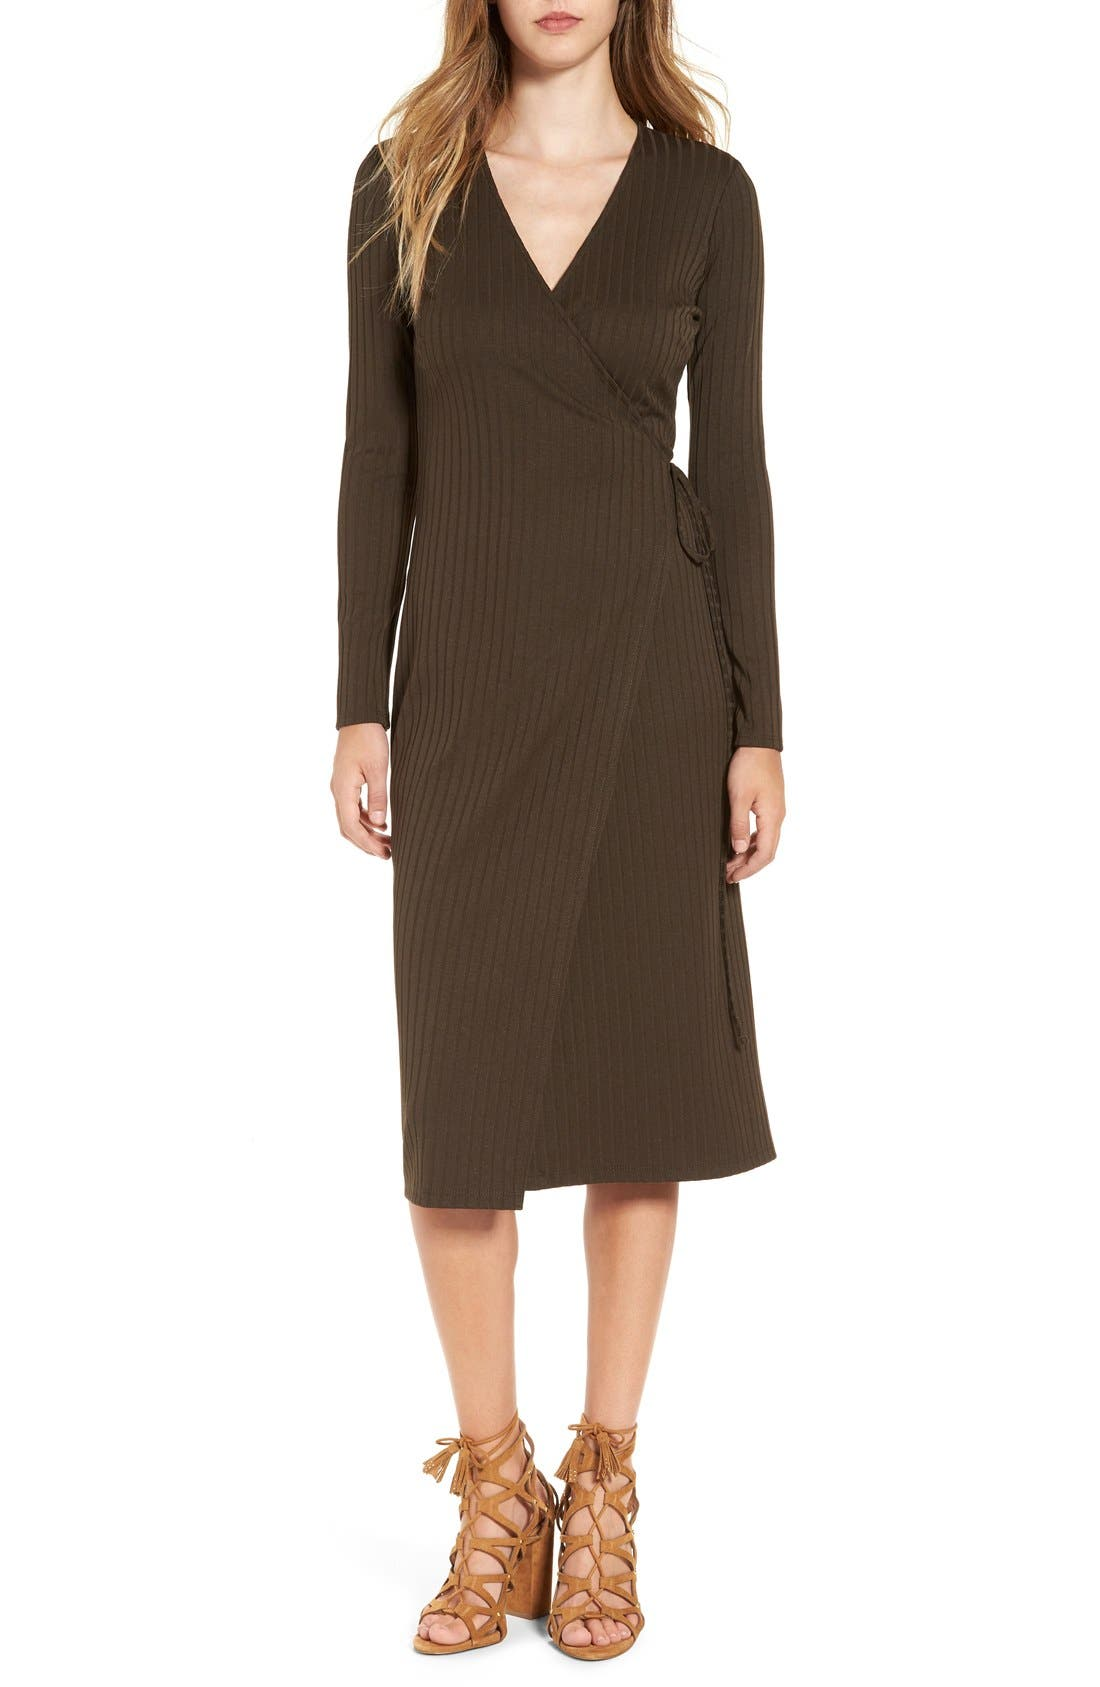 Main Image - ASTR Rib Knit Wrap Dress